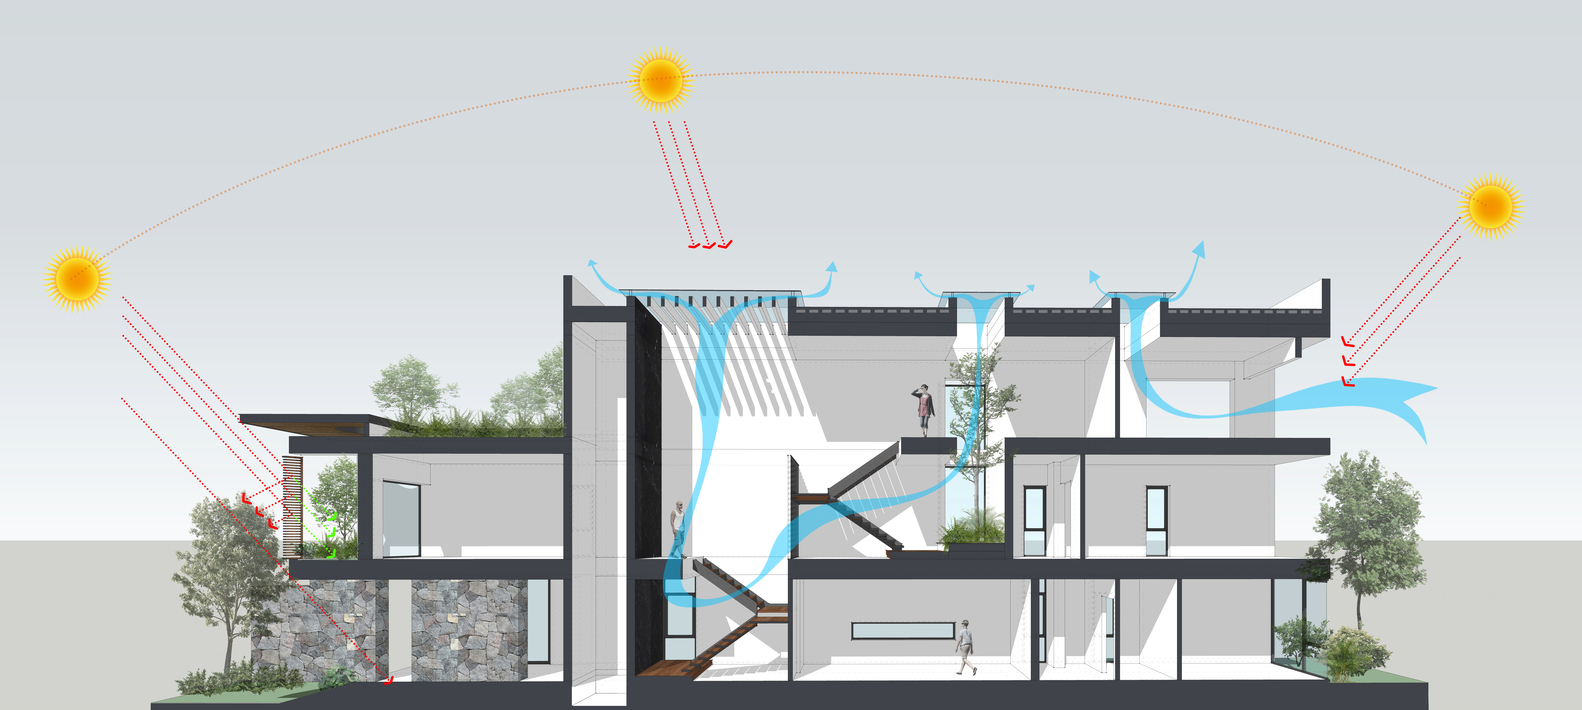 small resolution of house of light wind ray architecture viet nam diagram 03